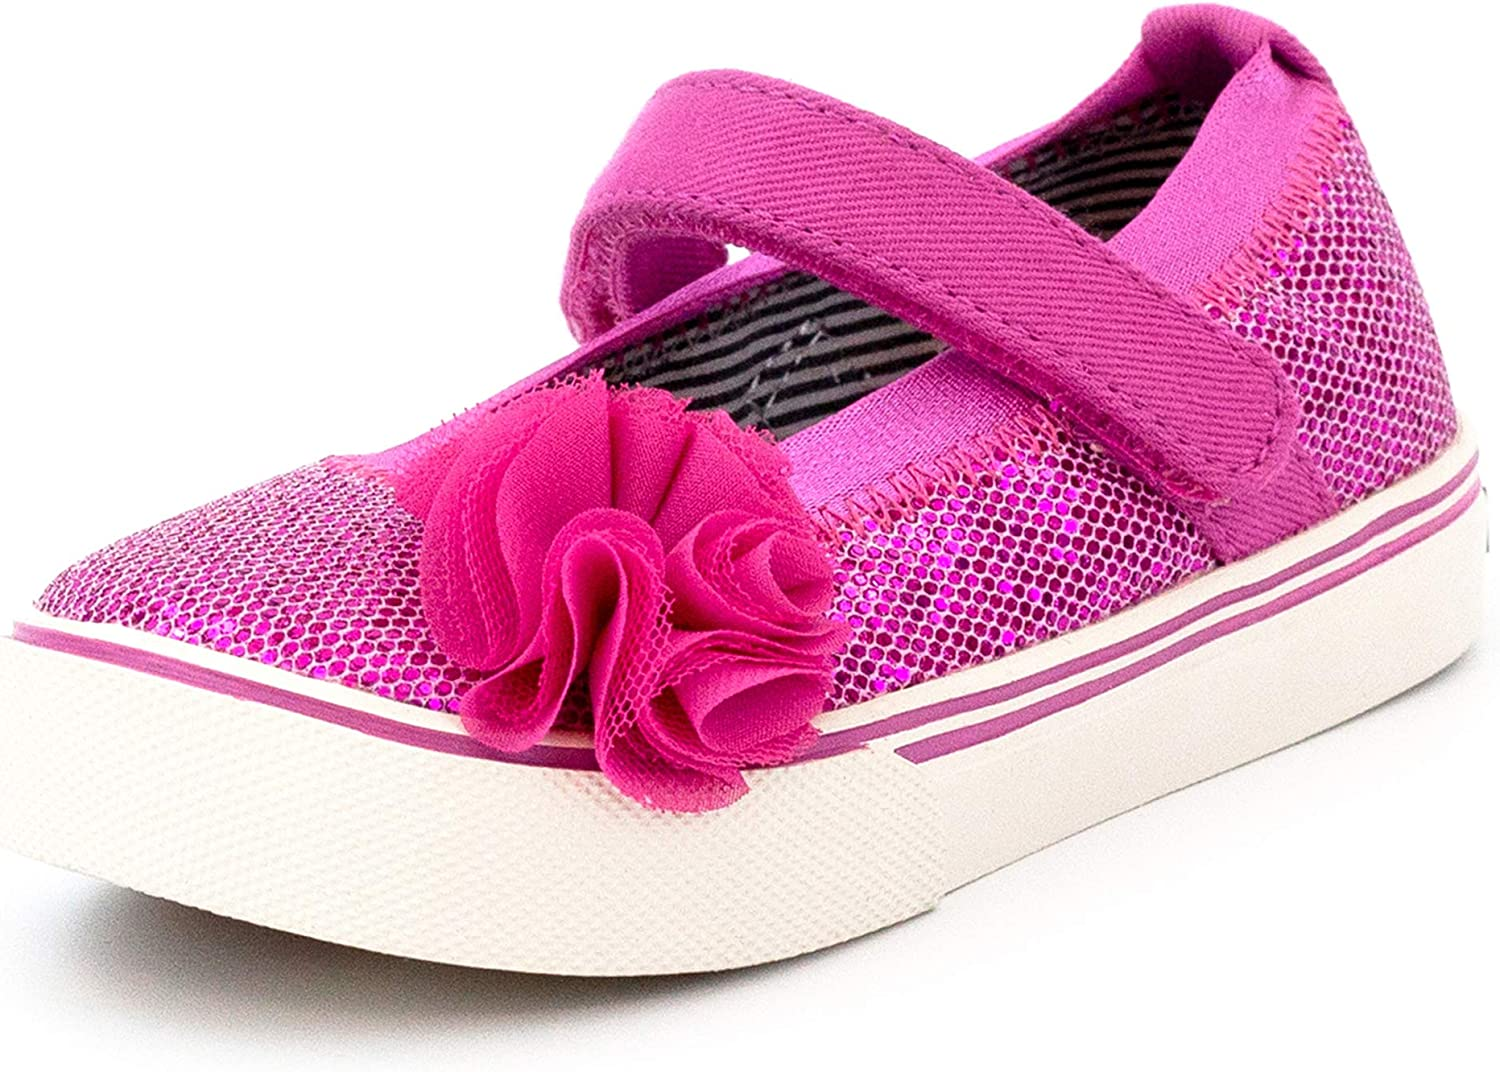 MORGAN MILO Dazzle Mary Jane Shoes It is very popular and Siz Toddlers Max 67% OFF Girls for